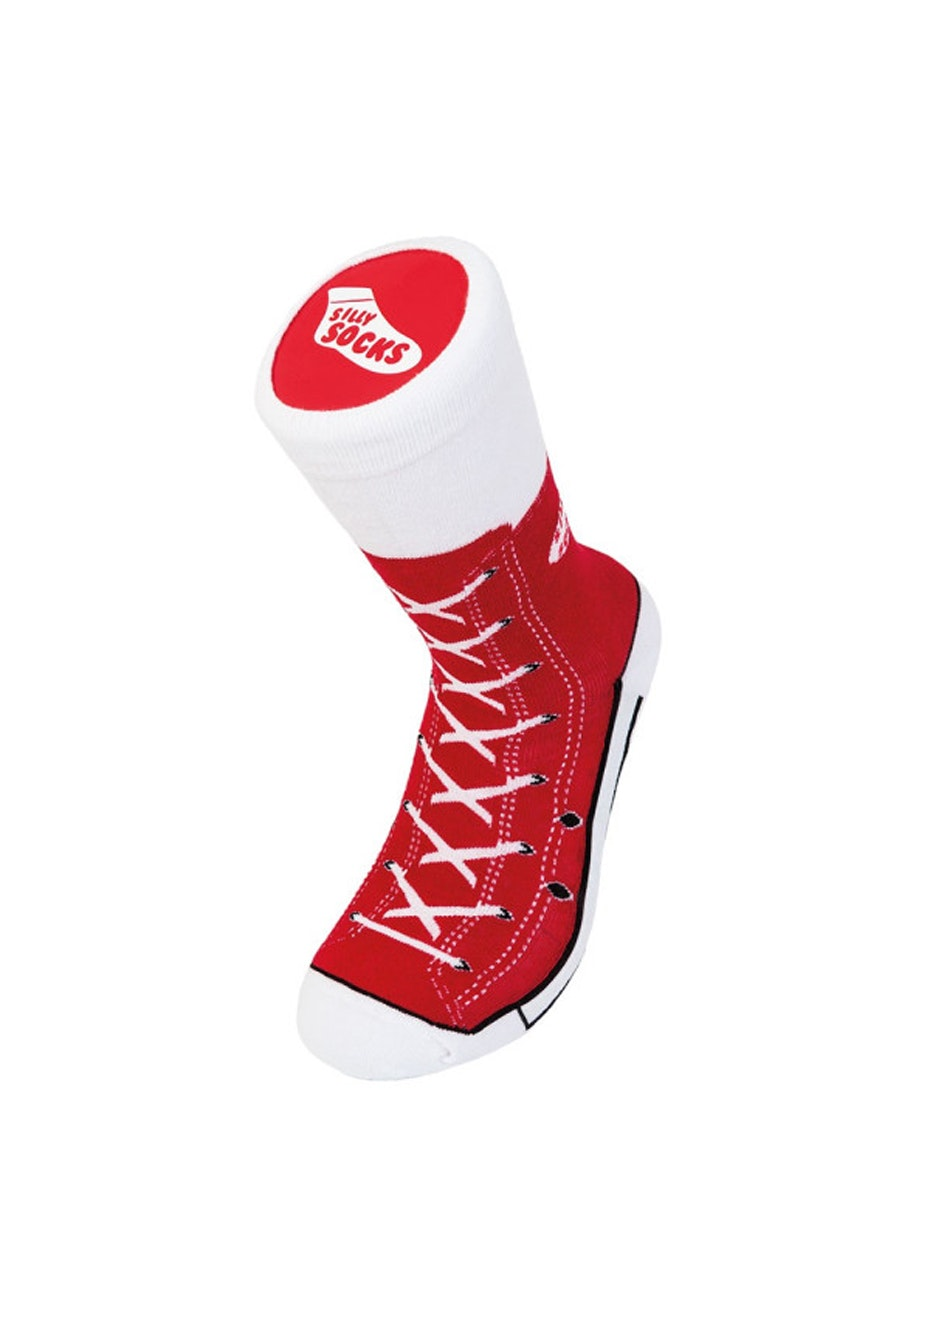 Silly Socks - Adult Sneaker Red (One Size)